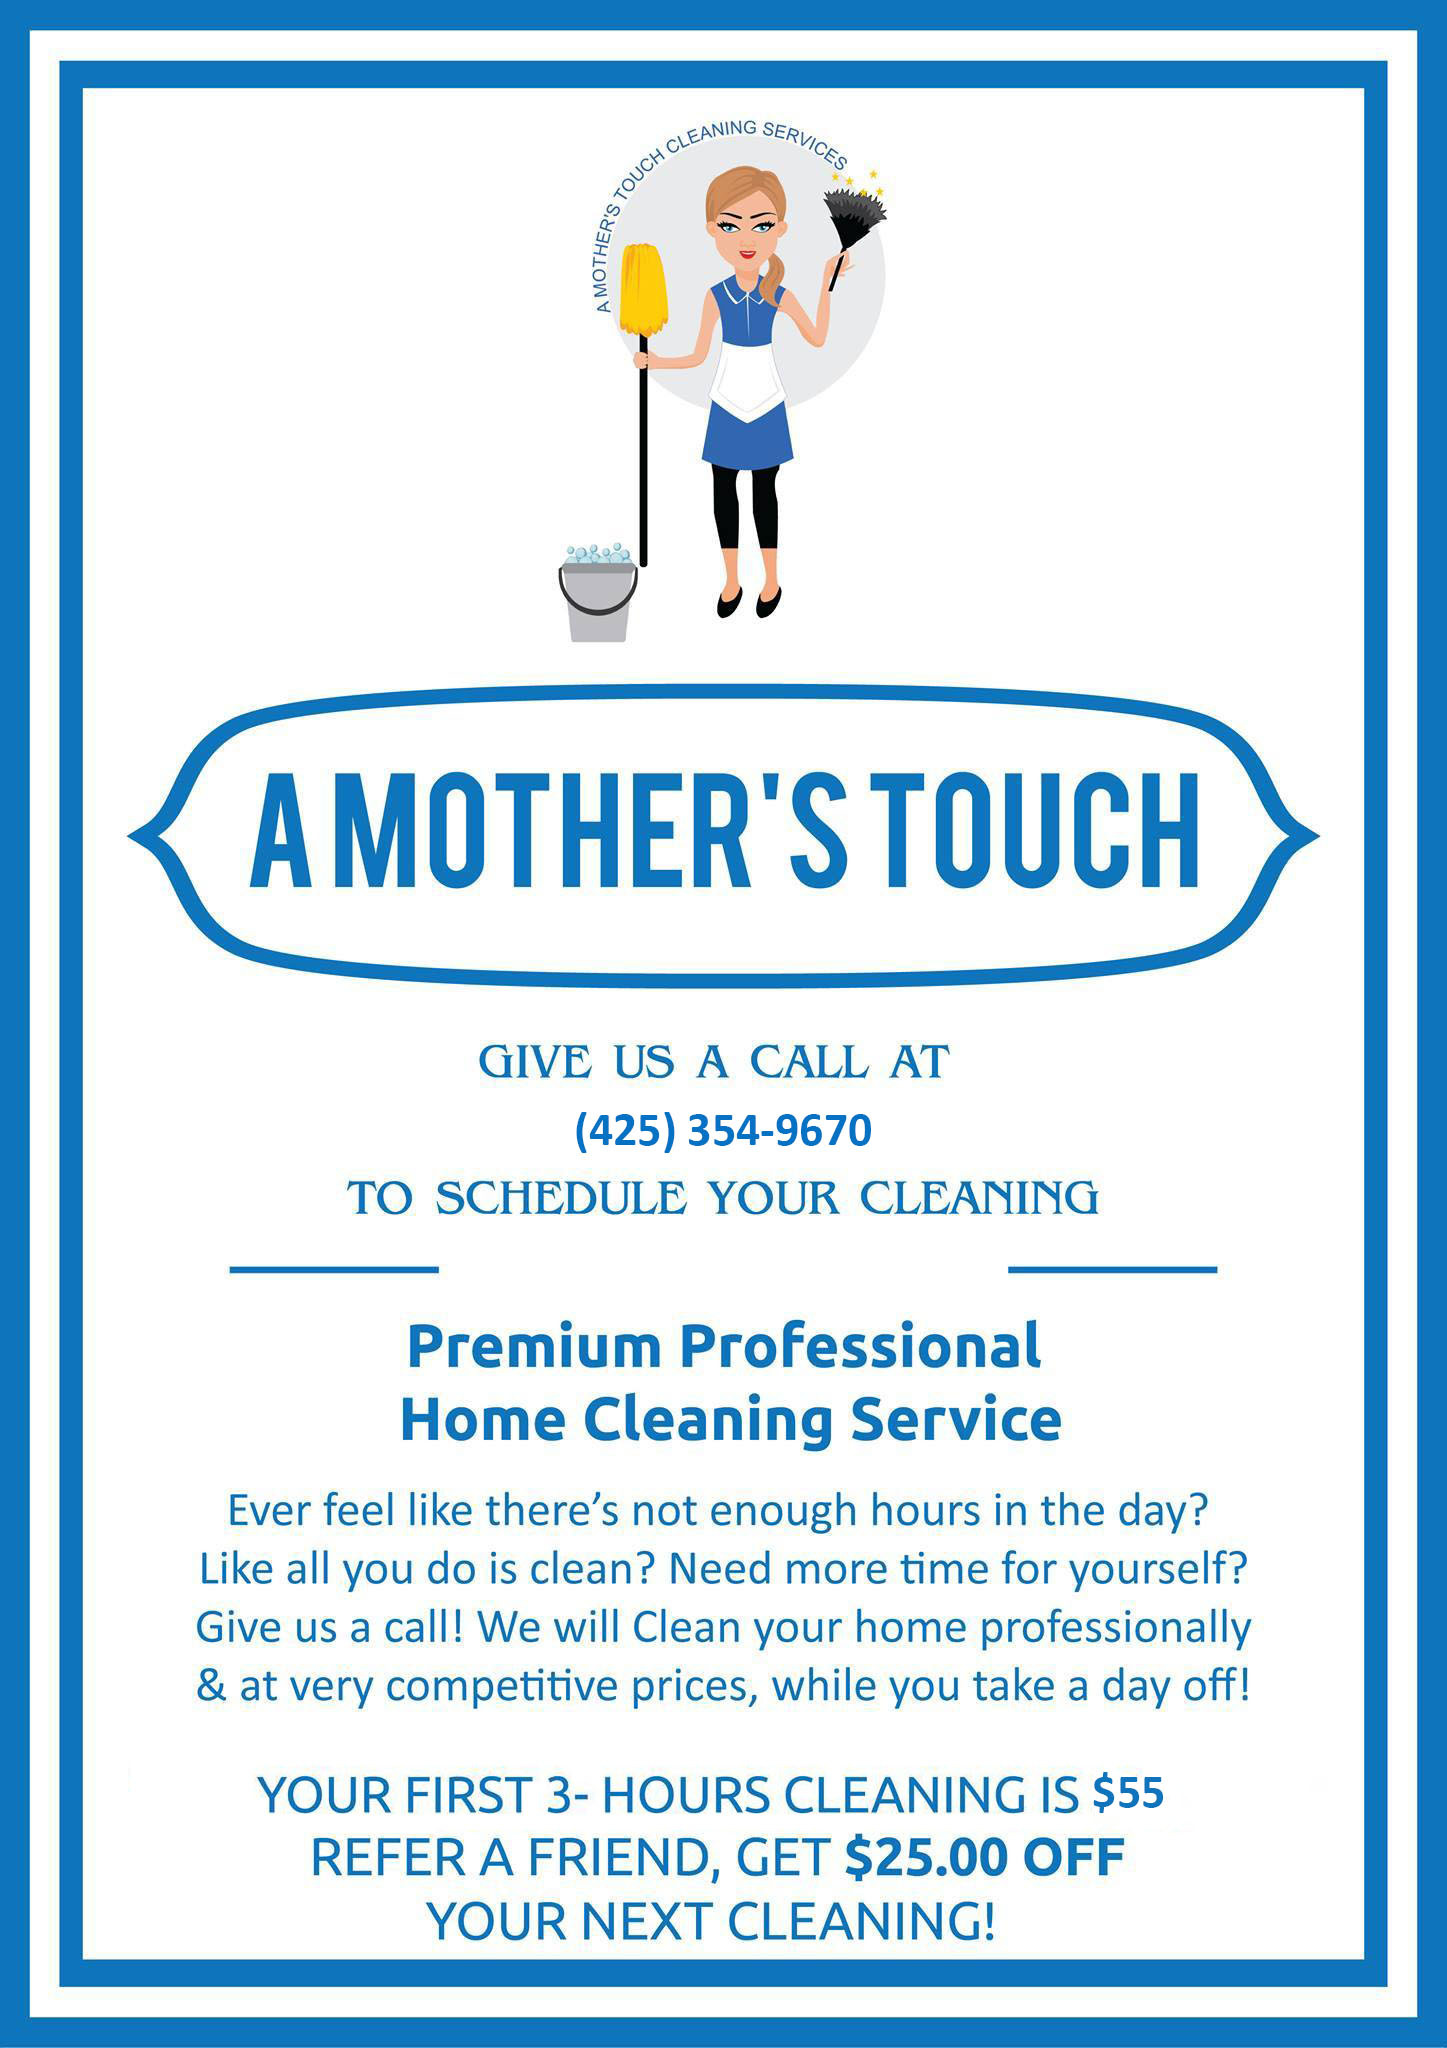 Mother's Touch Cleaning Company